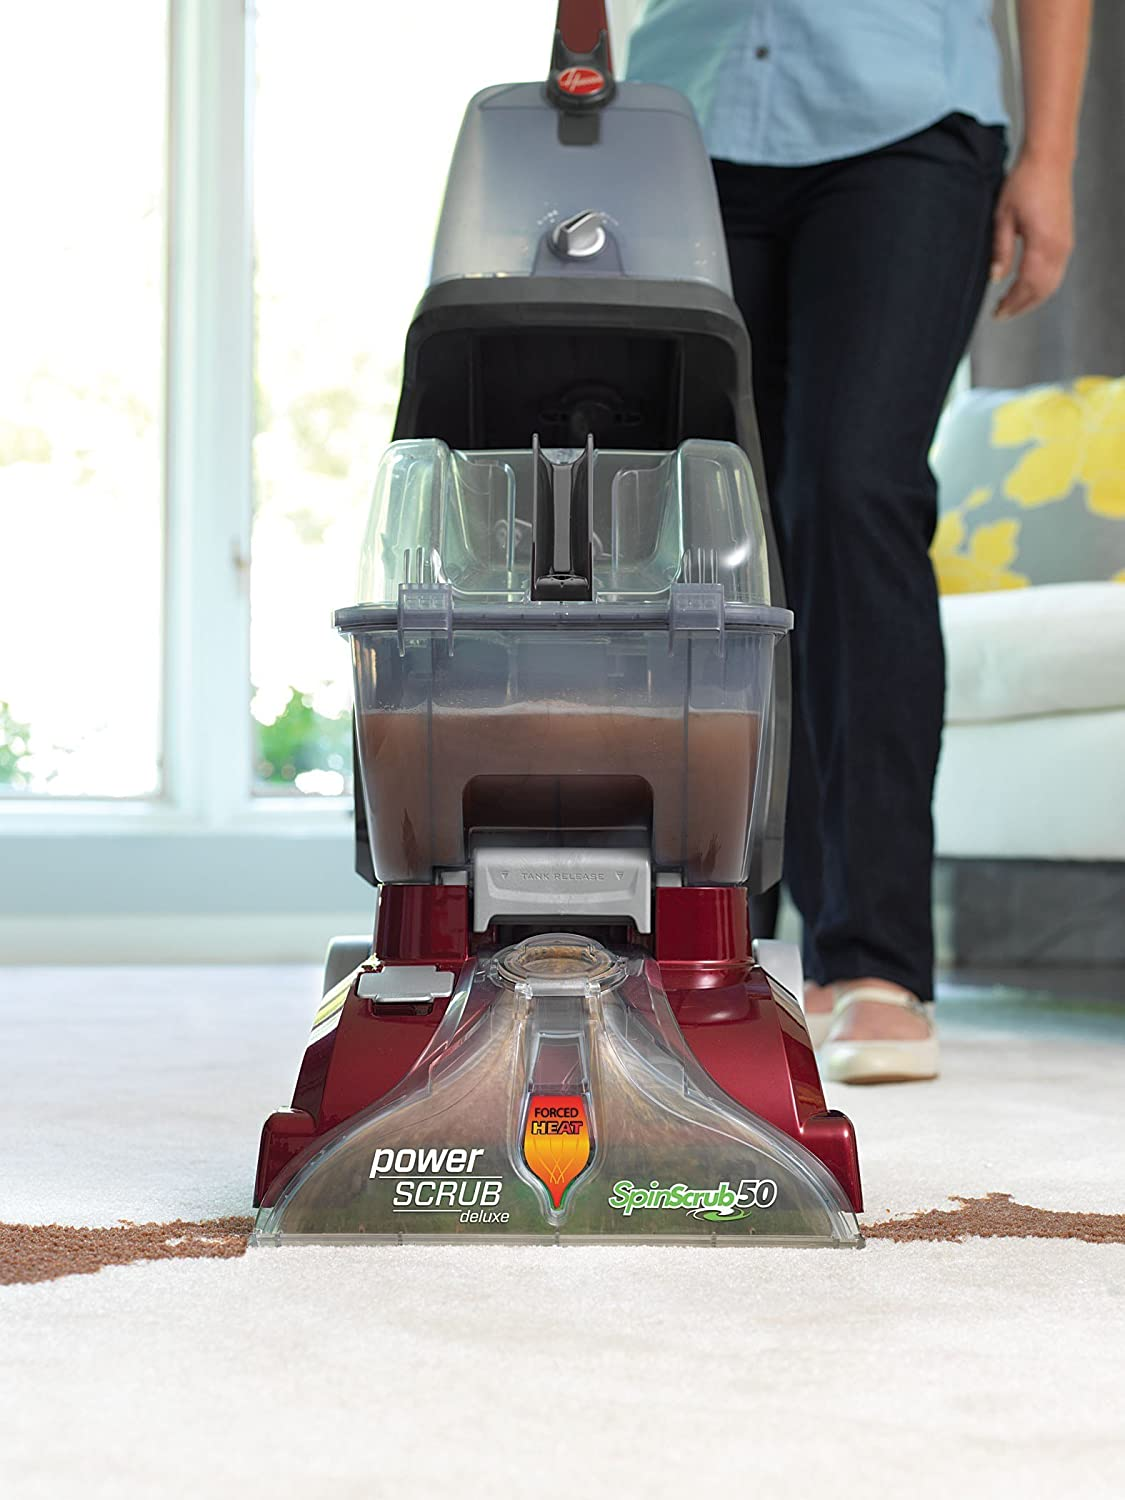 Hoover FH50150 Deluxe Carpet Cleaner